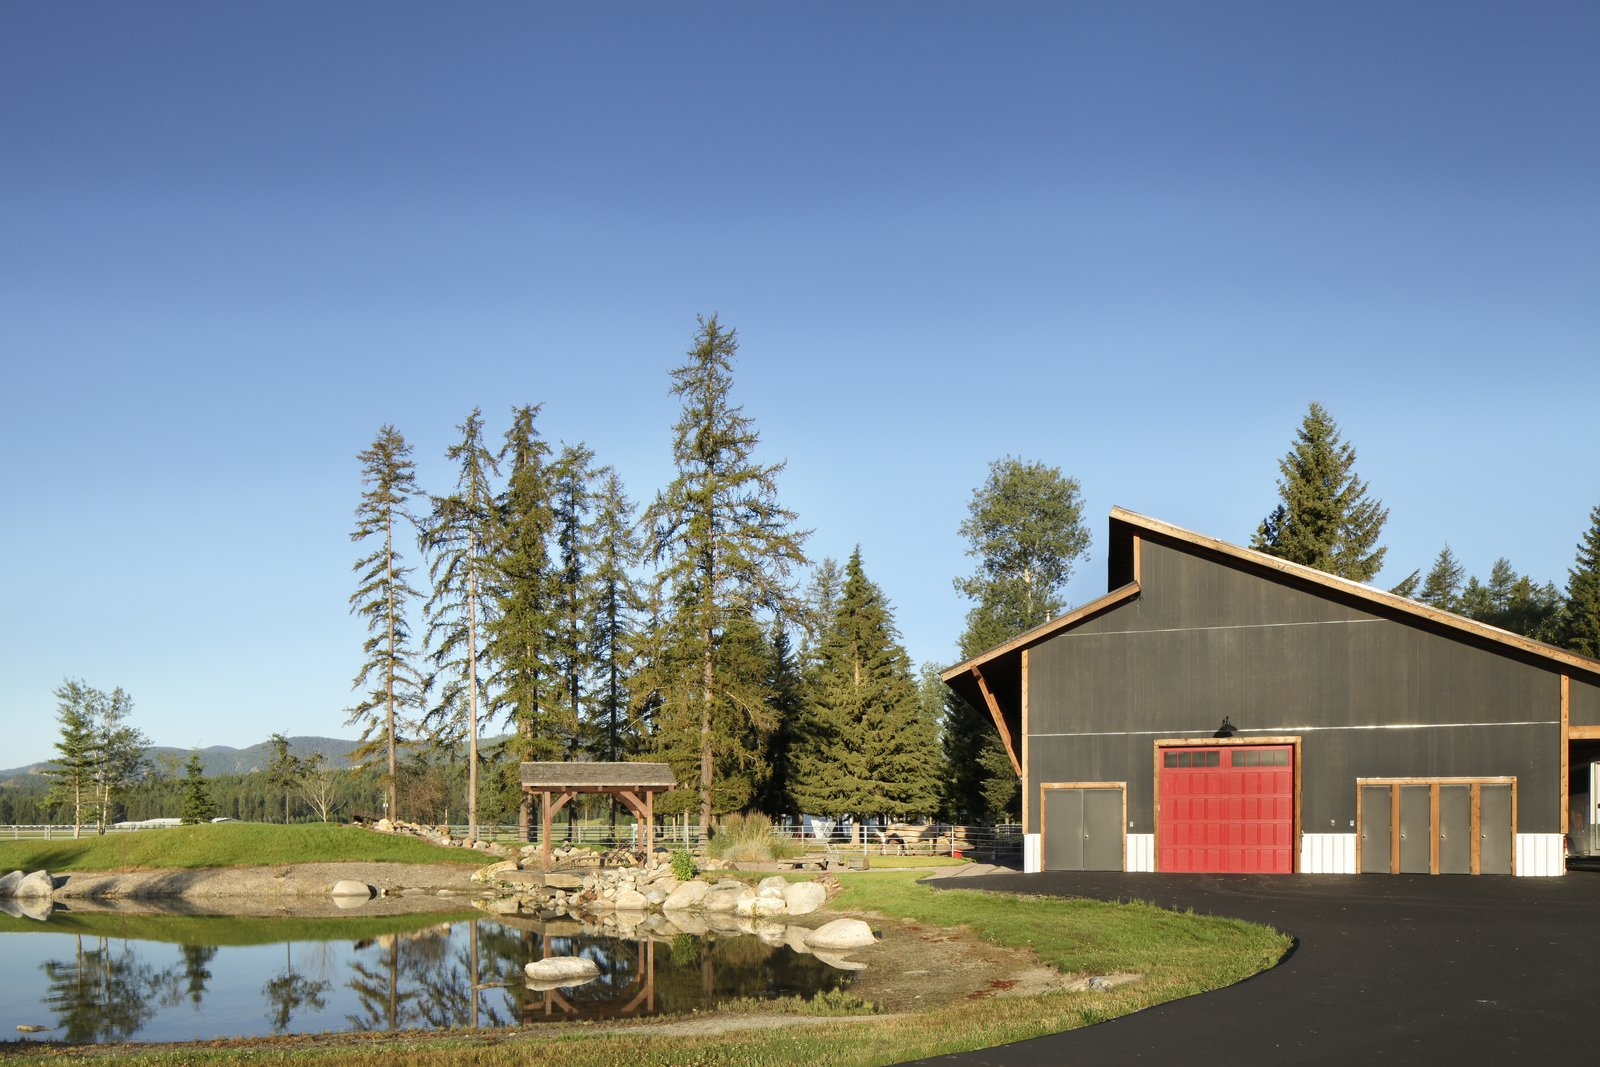 The outdoor arena is currently paved for vehicle storage, but it can be retrofitted to become a working riding ring. Tagged: Outdoor, Back Yard, Woodland, and Trees. A Rock & Roll Hall of Famer's Picturesque Montana Retreat Is Going Up For Auction - Photo 10 of 11